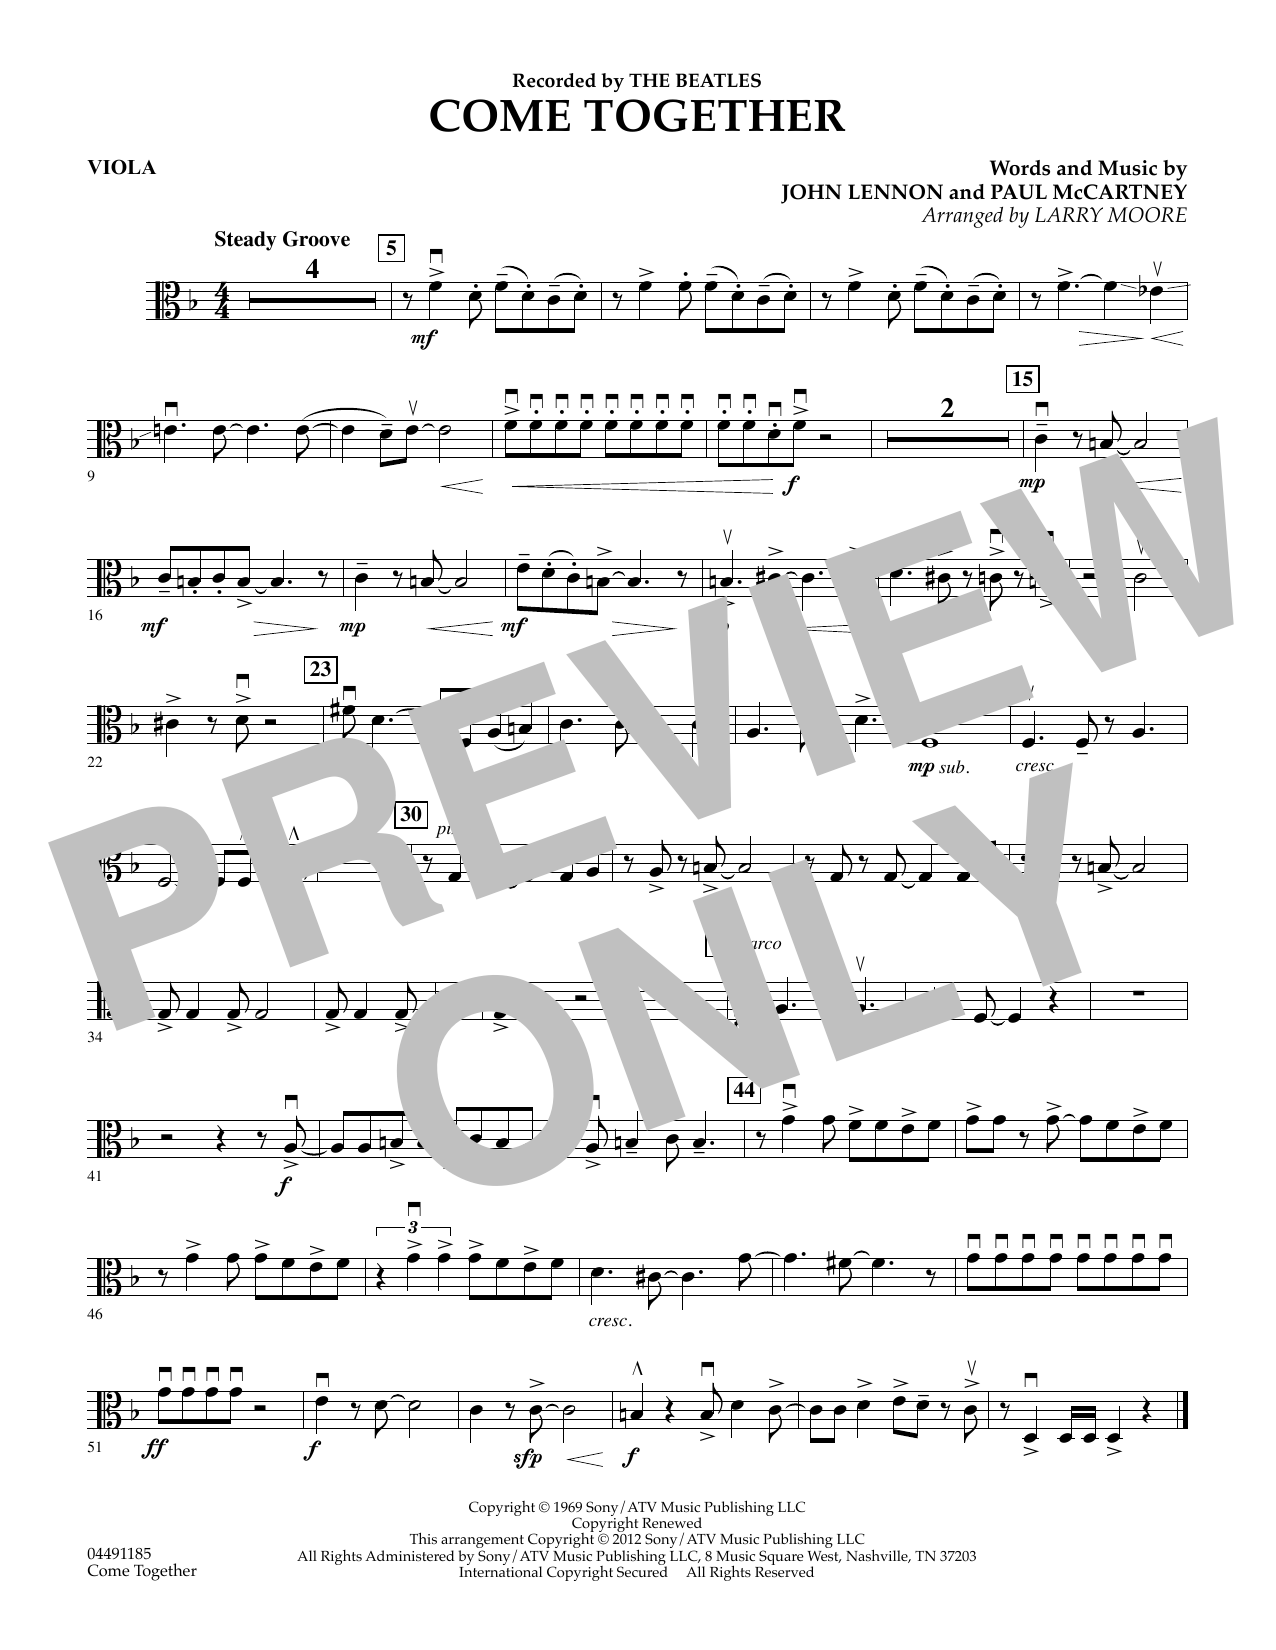 The Beatles Come Together (arr. Larry Moore) - Viola sheet music notes and chords. Download Printable PDF.